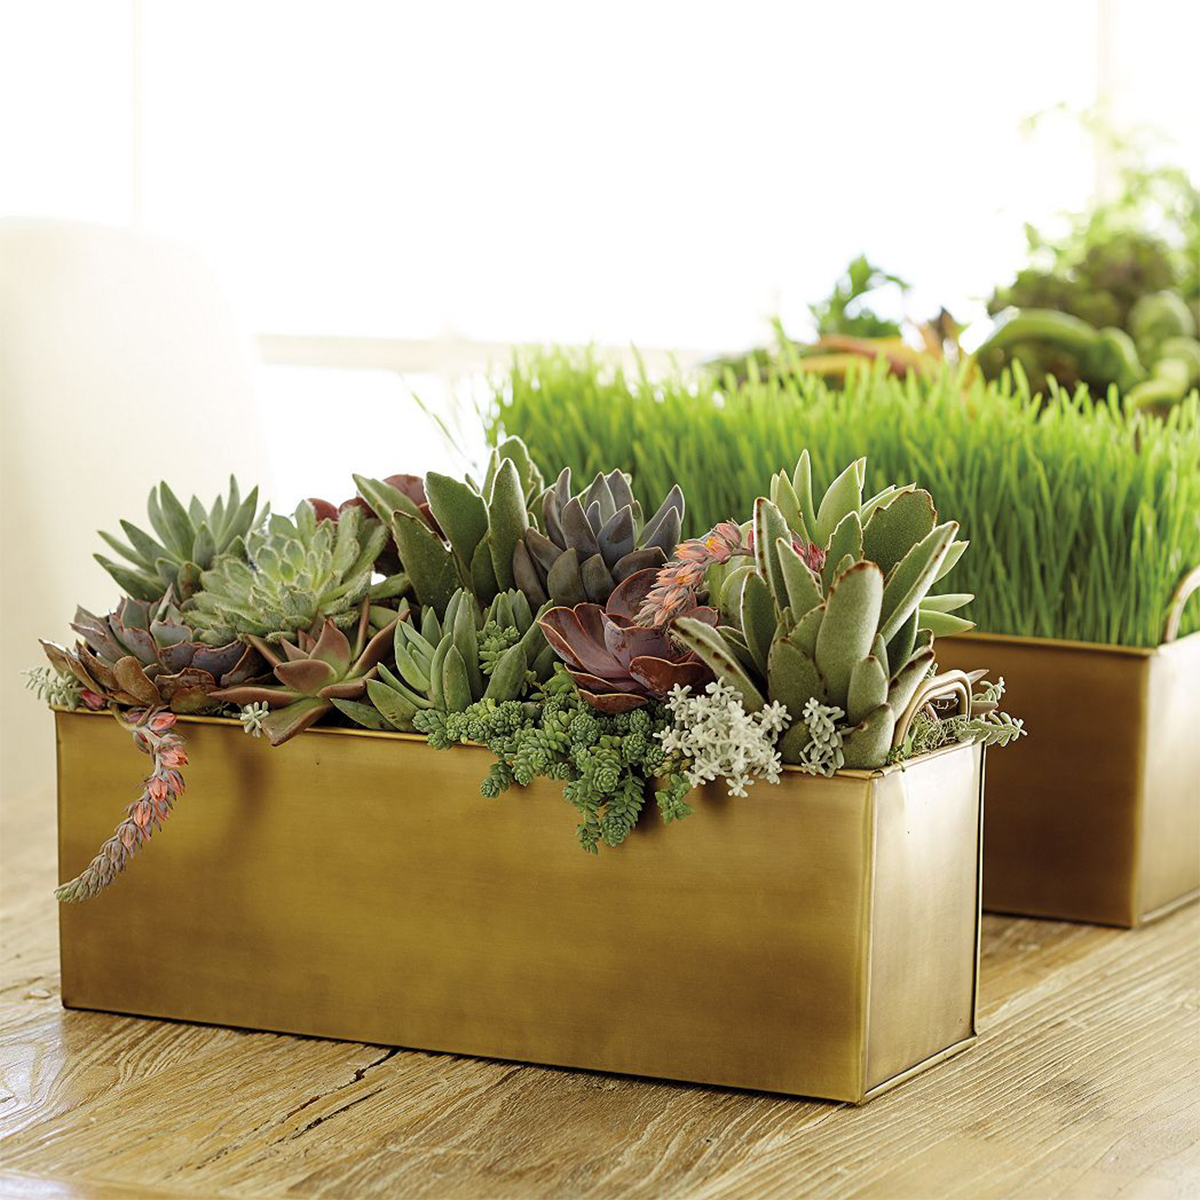 Gold metal cachepot with succulents and other plants inside photo